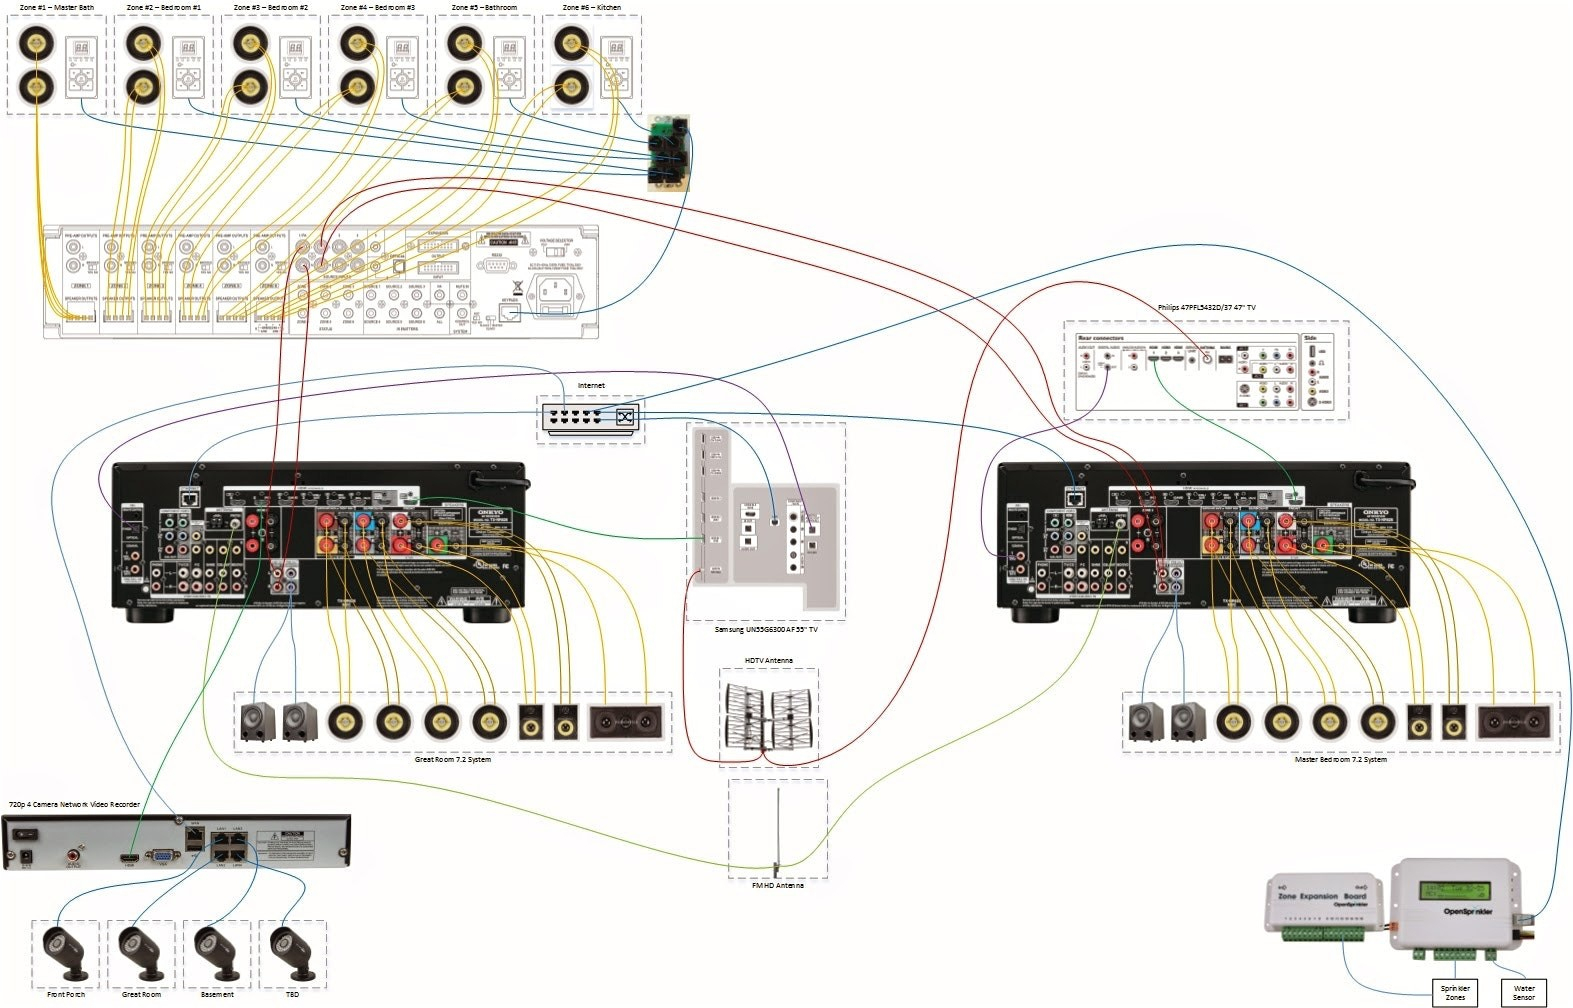 Whole Home Audio Wiring Diagrams | Wiring Library - Whole House Audio System Wiring Diagram